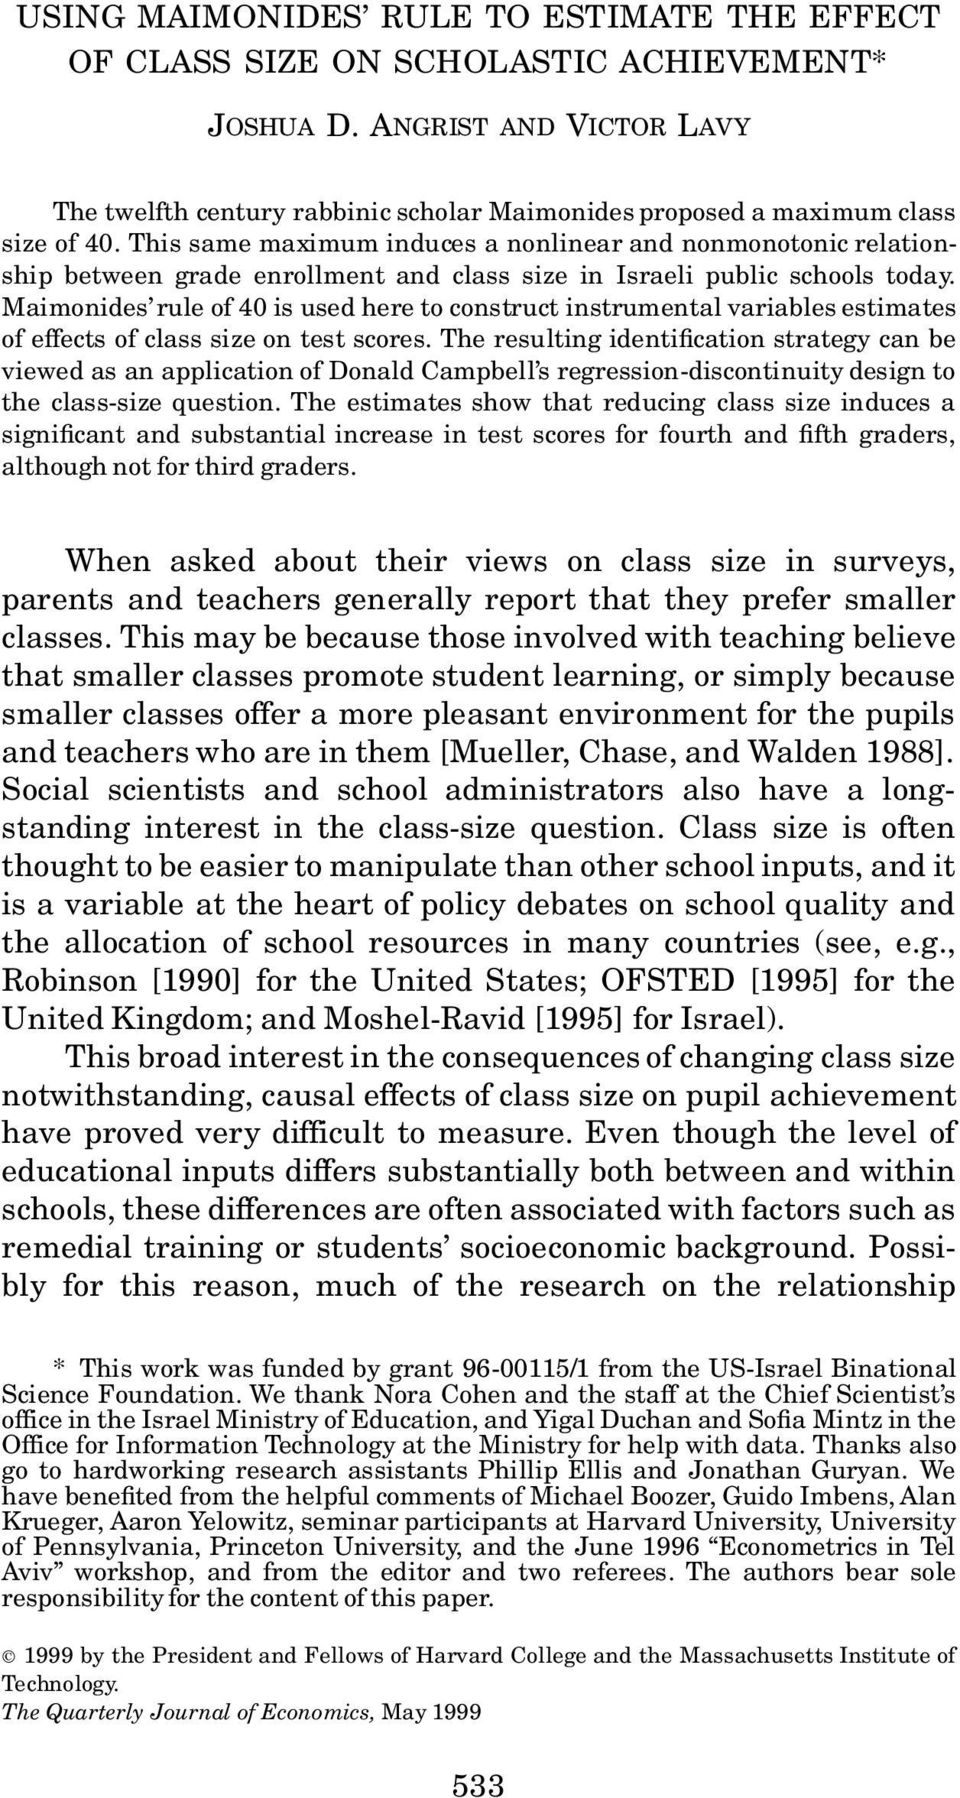 This same maximum induces a nonlinear and nonmonotonic relationship between grade enrollment and class size in Israeli public schools today.